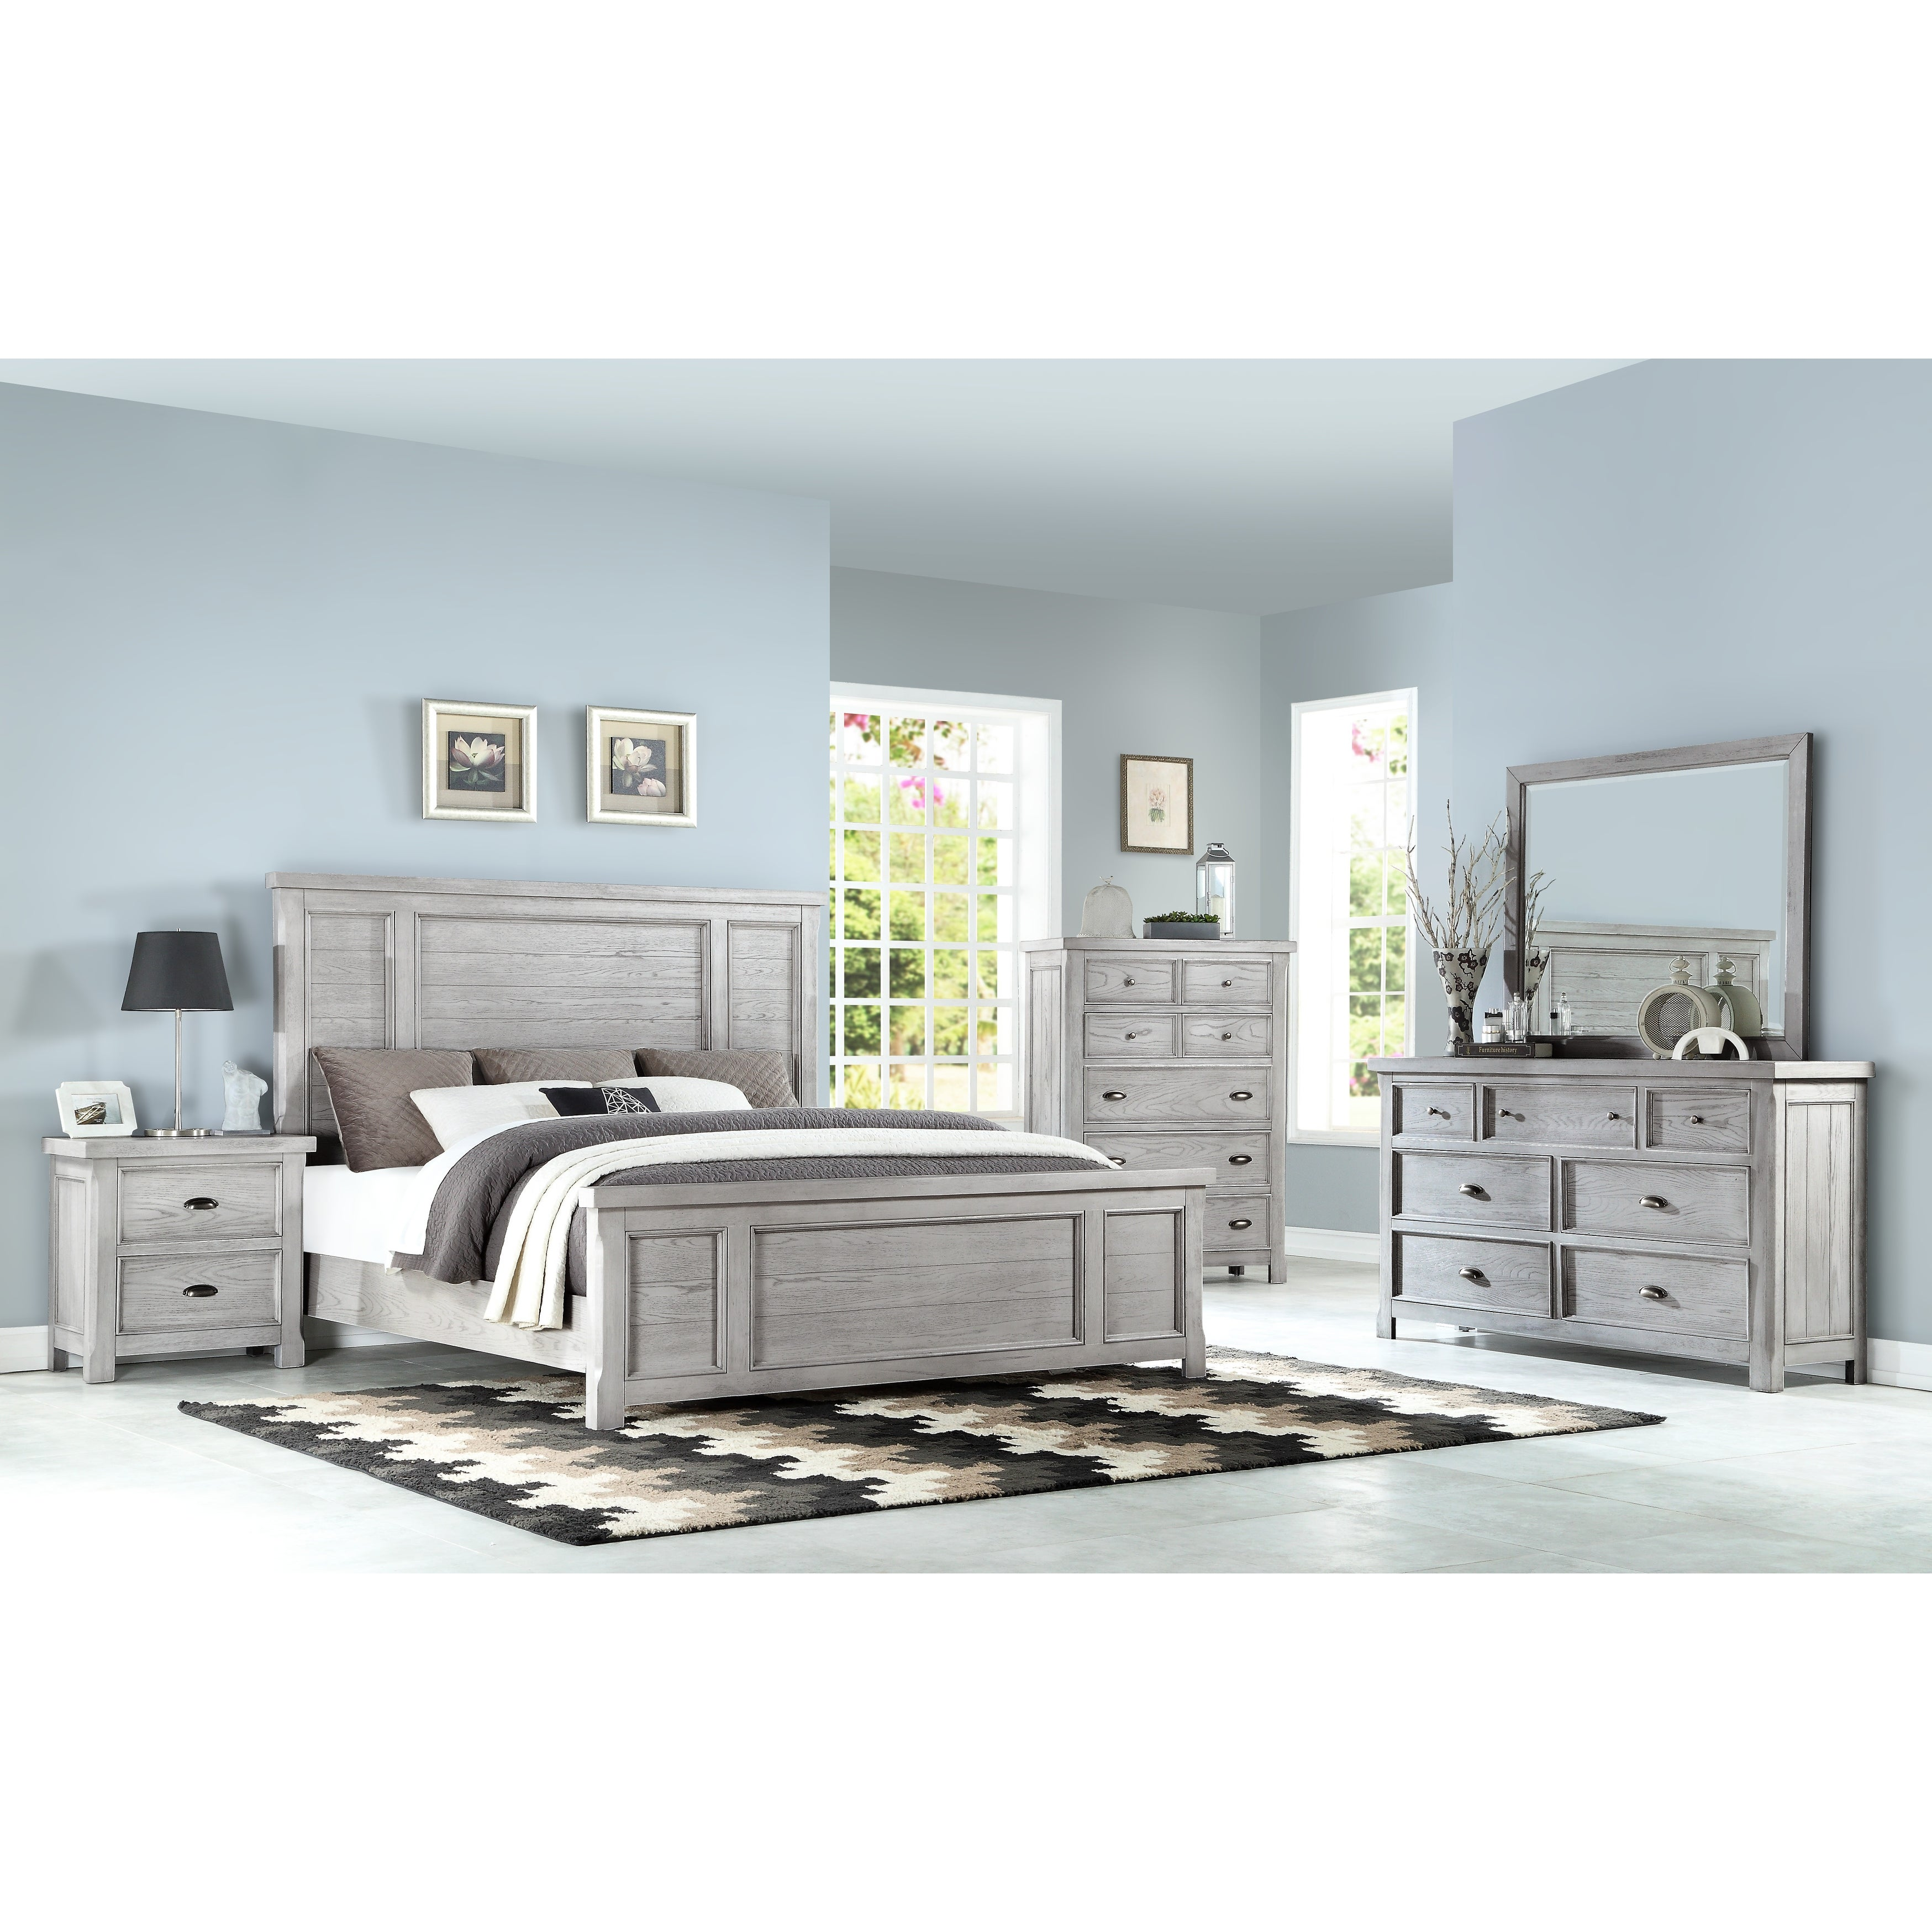 The Gray Barn Edison 5 Piece Modern Farmhouse Bedroom Queen Set Overstock 31701915